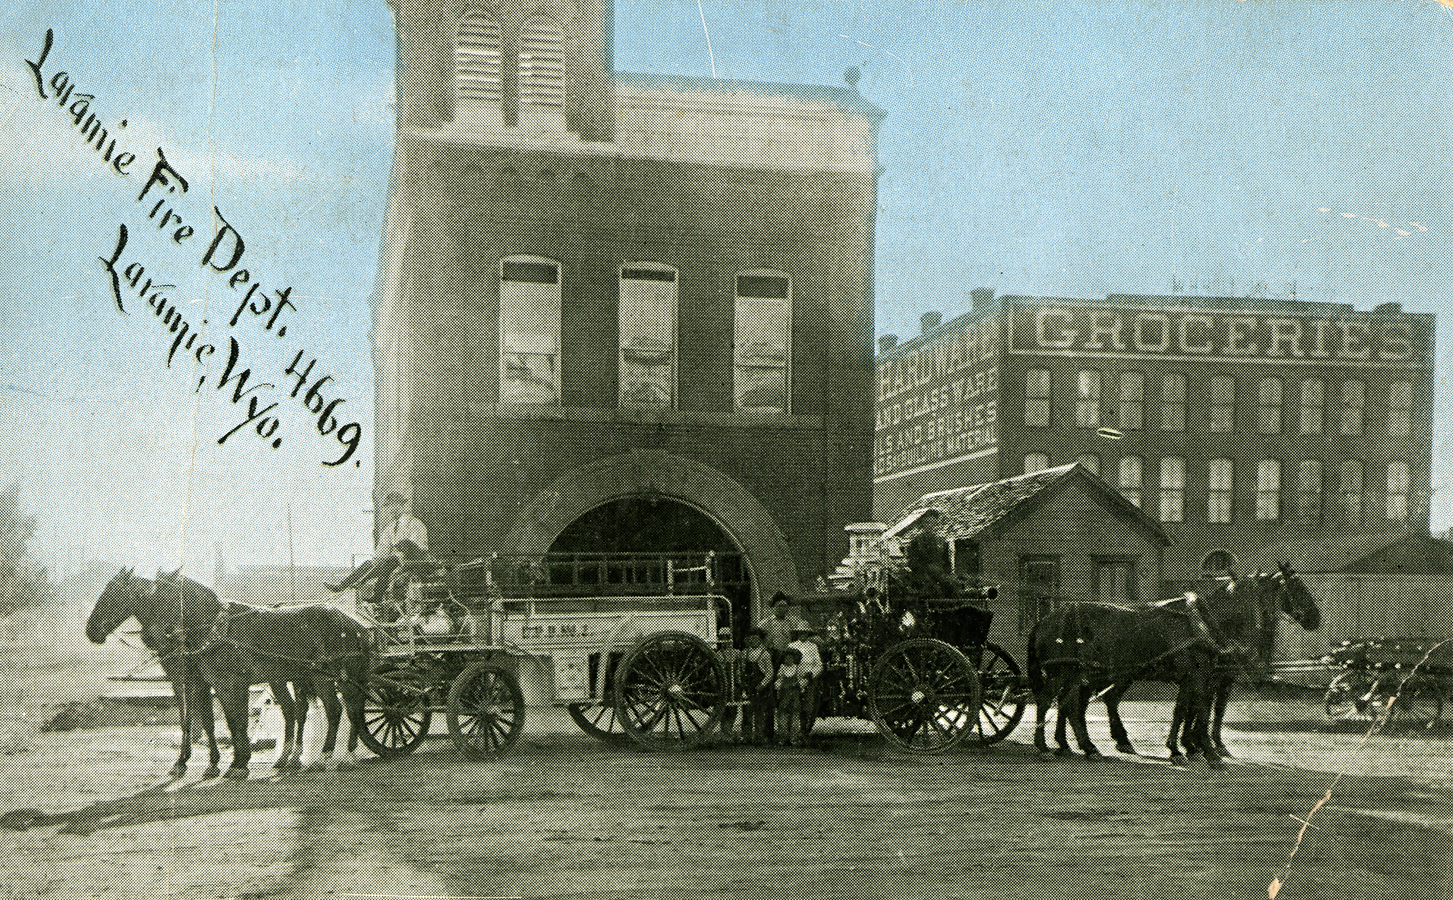 Laramie Fire Department, corner of 3rd and Custer, approx. 1911